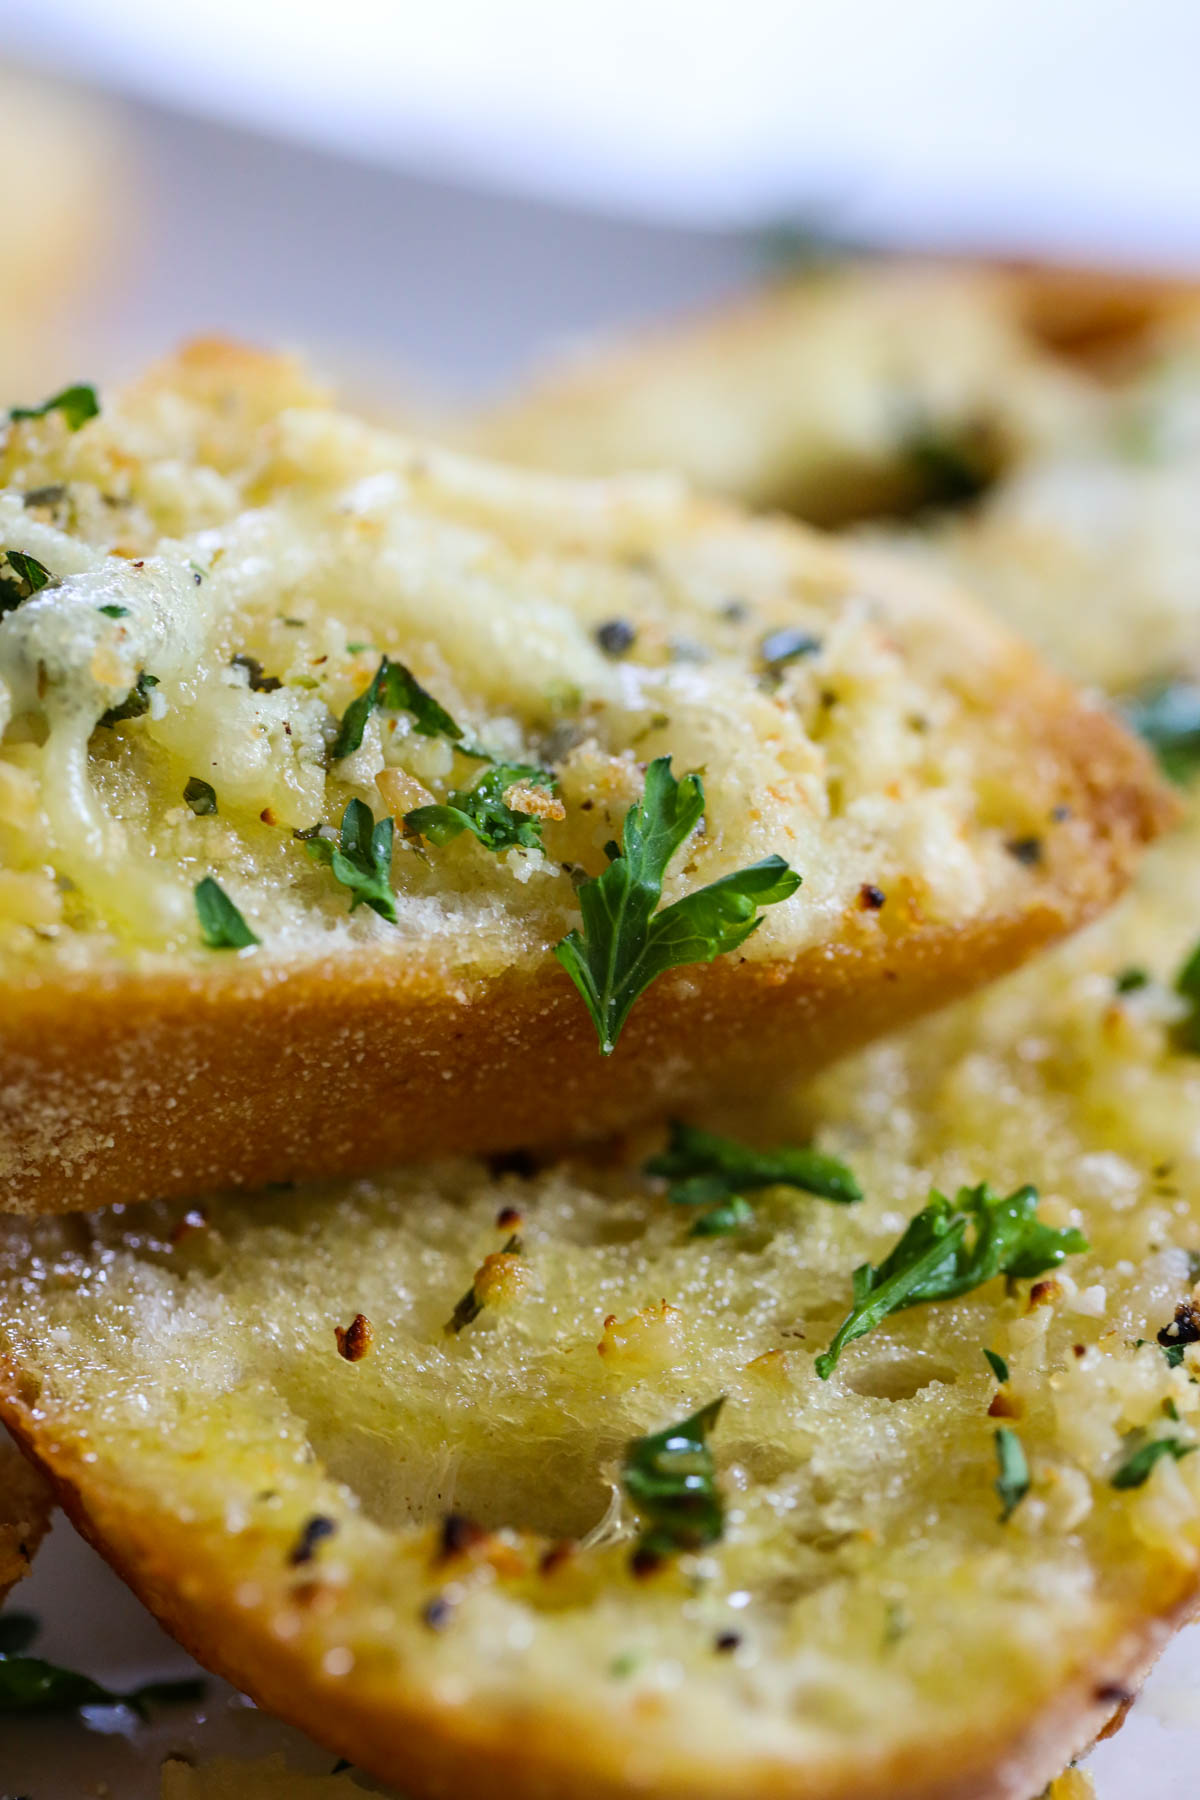 buttery garlic bread with parsley